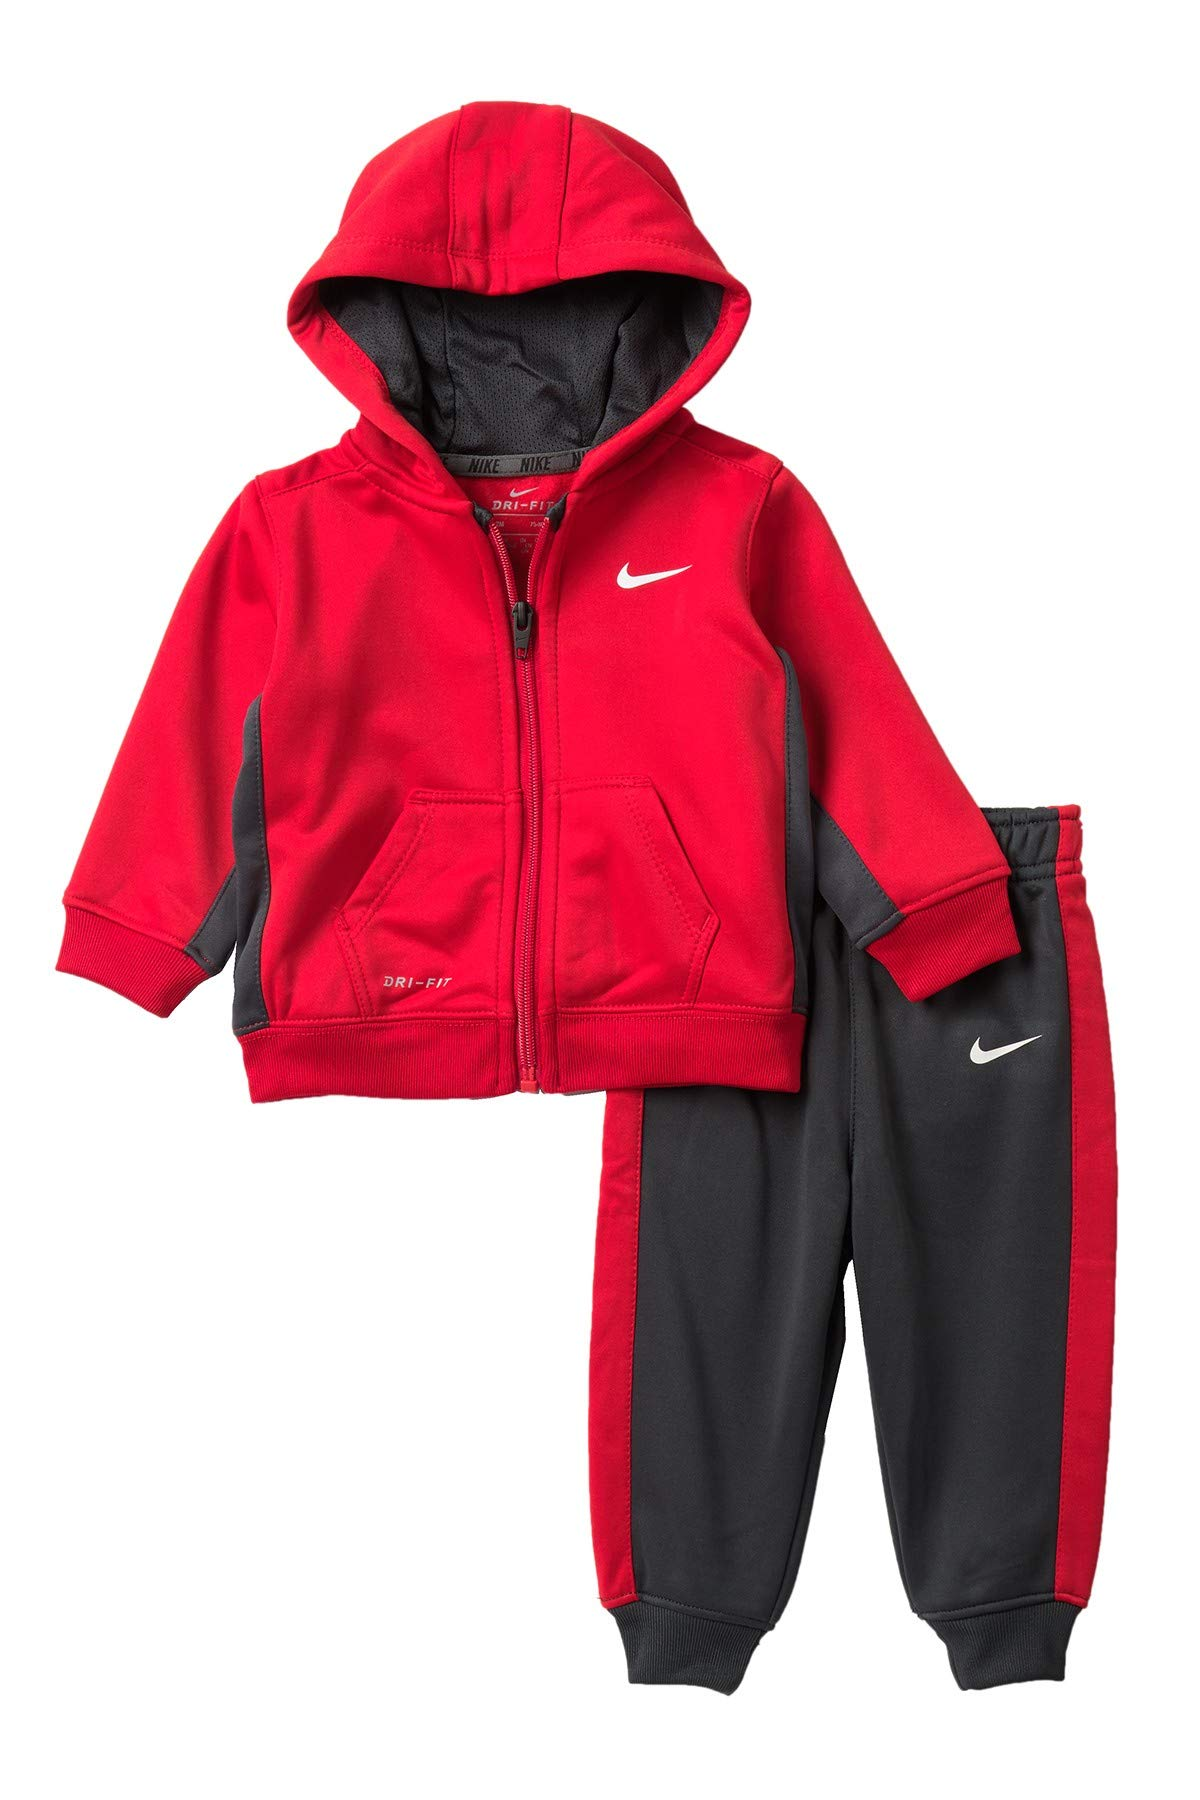 Nike Baby Boys' 2-Piece Therma Dri-Fit Sweatsuit - university red, 12 months by Nike